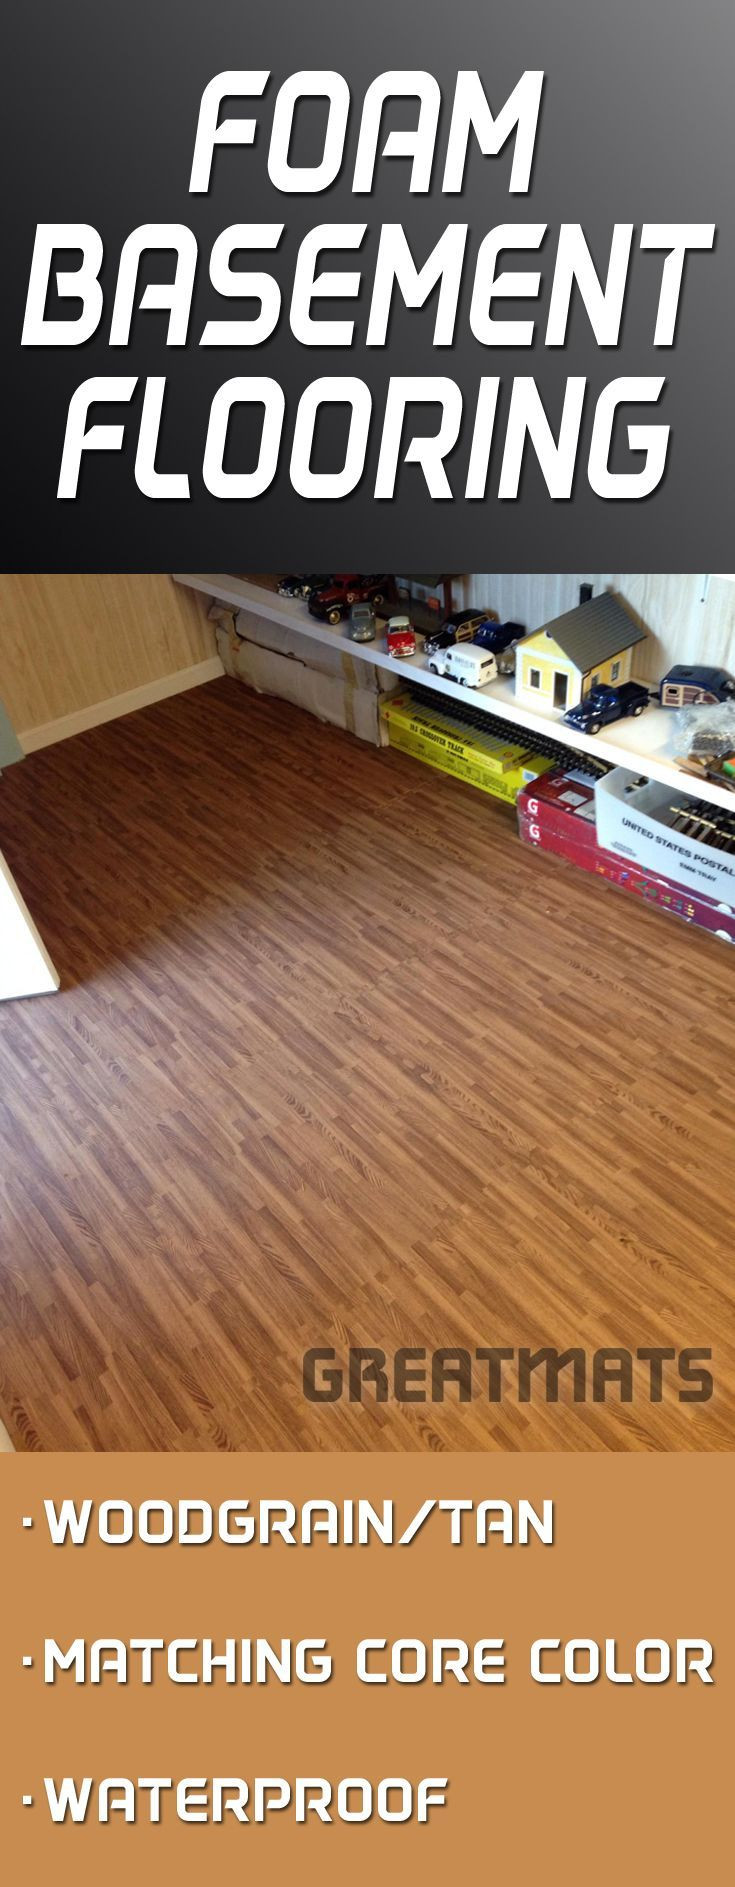 hardwood flooring vaughan of 19 best basement ideas unfinished images on pinterest basement pertaining to reversible wood grain foam tiles offer a cushioned waterproof and durable basement floor solution